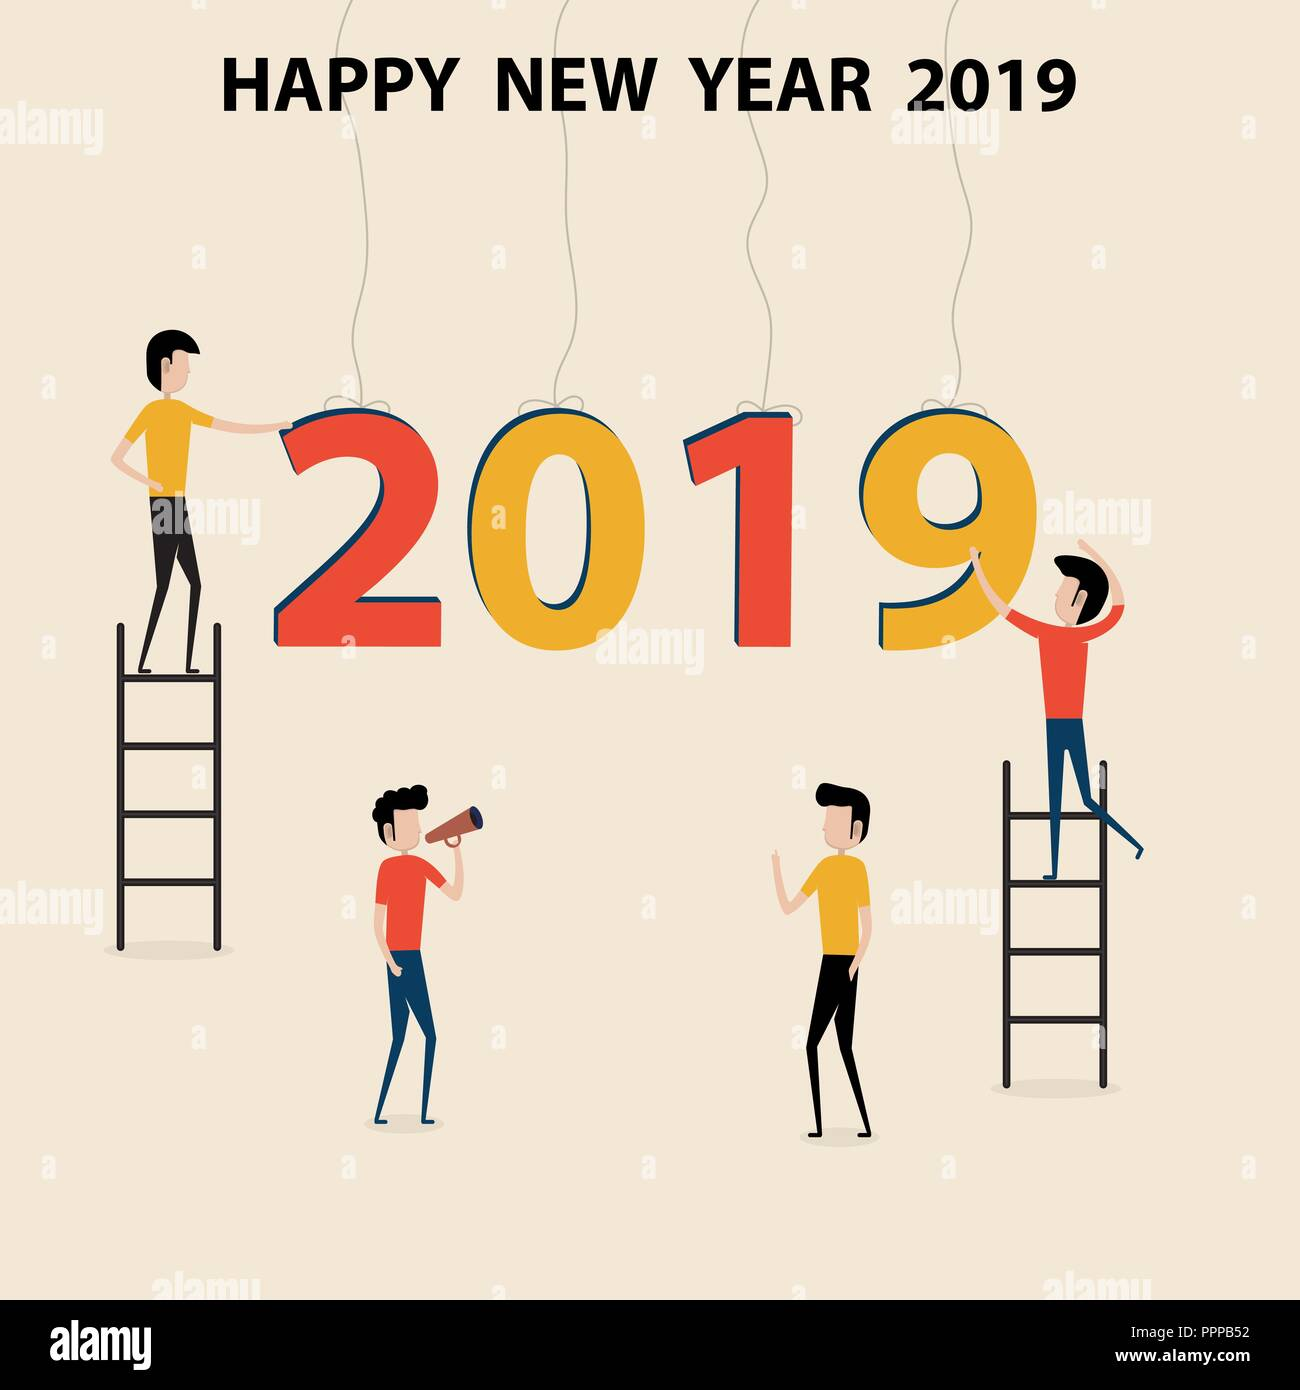 Business People Cartoon Character Happy New Year 2019 Concept